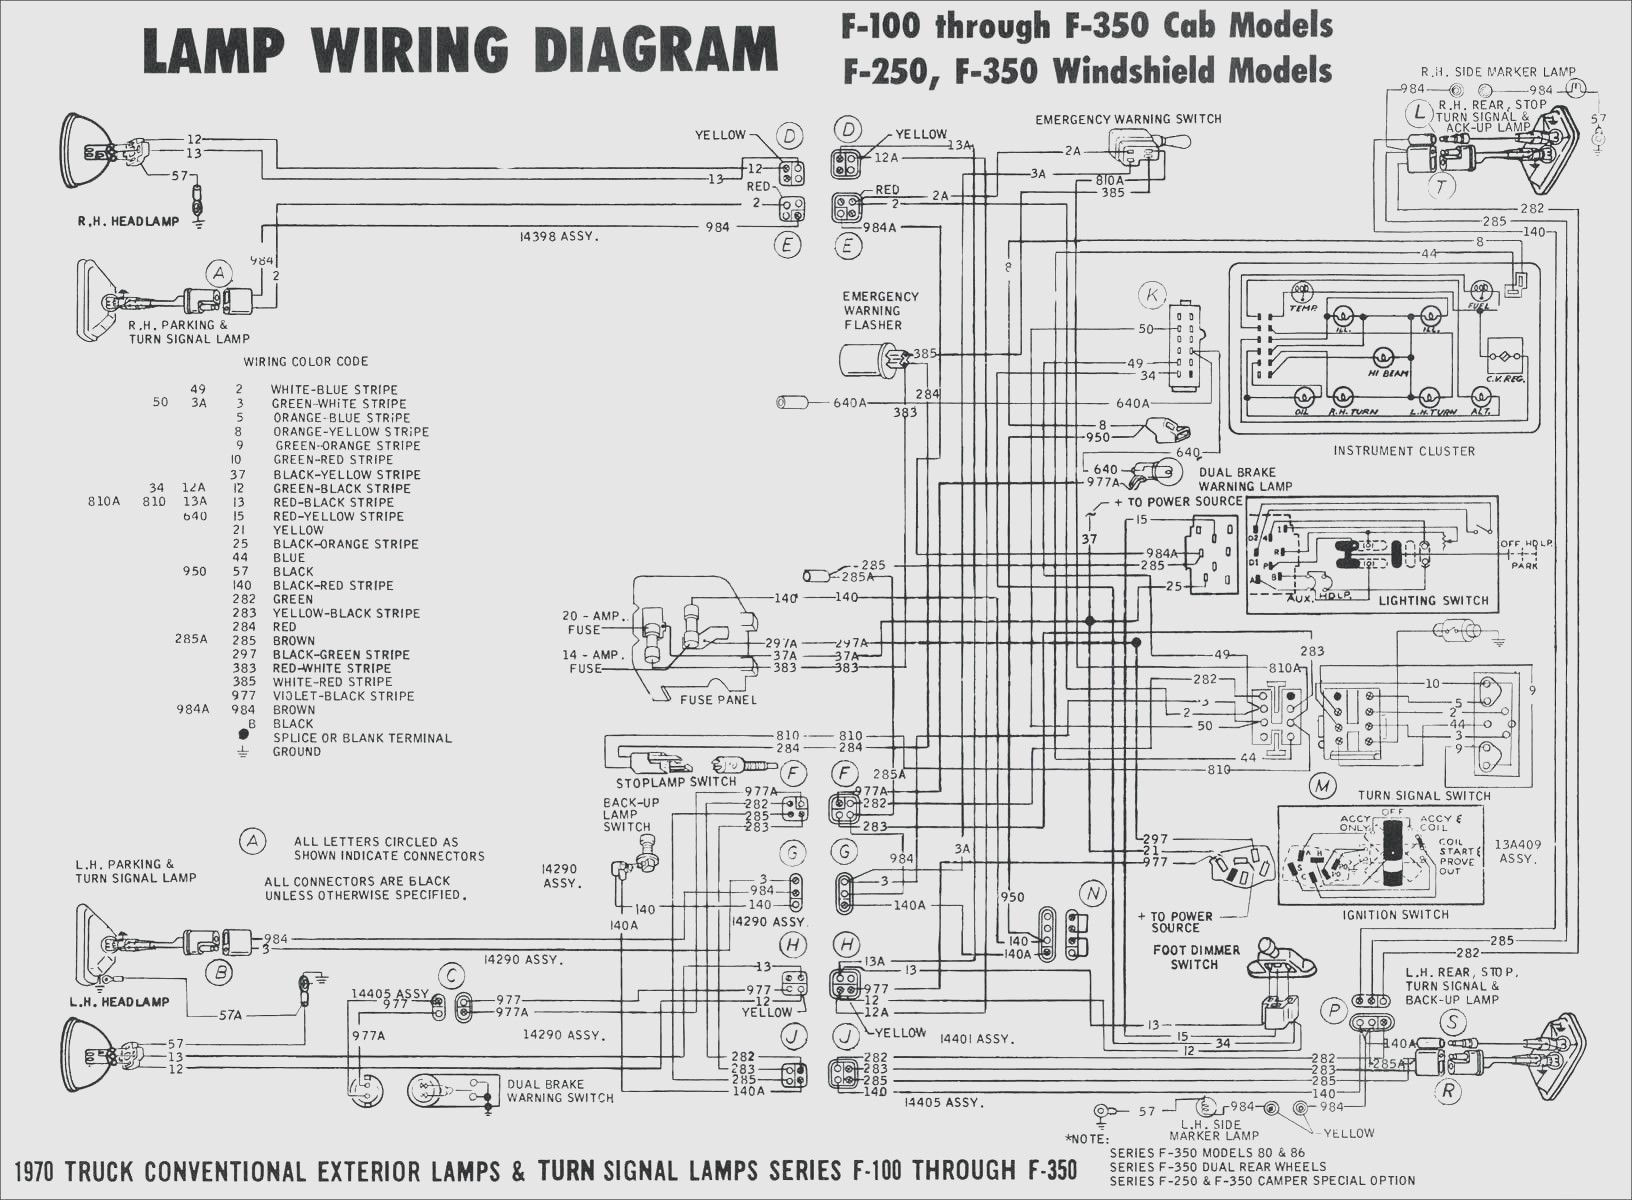 1986 Chevy Truck Wiring Diagram Gm Tbi Wiring Diagram Experts Wiring Diagram • Of 1986 Chevy Truck Wiring Diagram